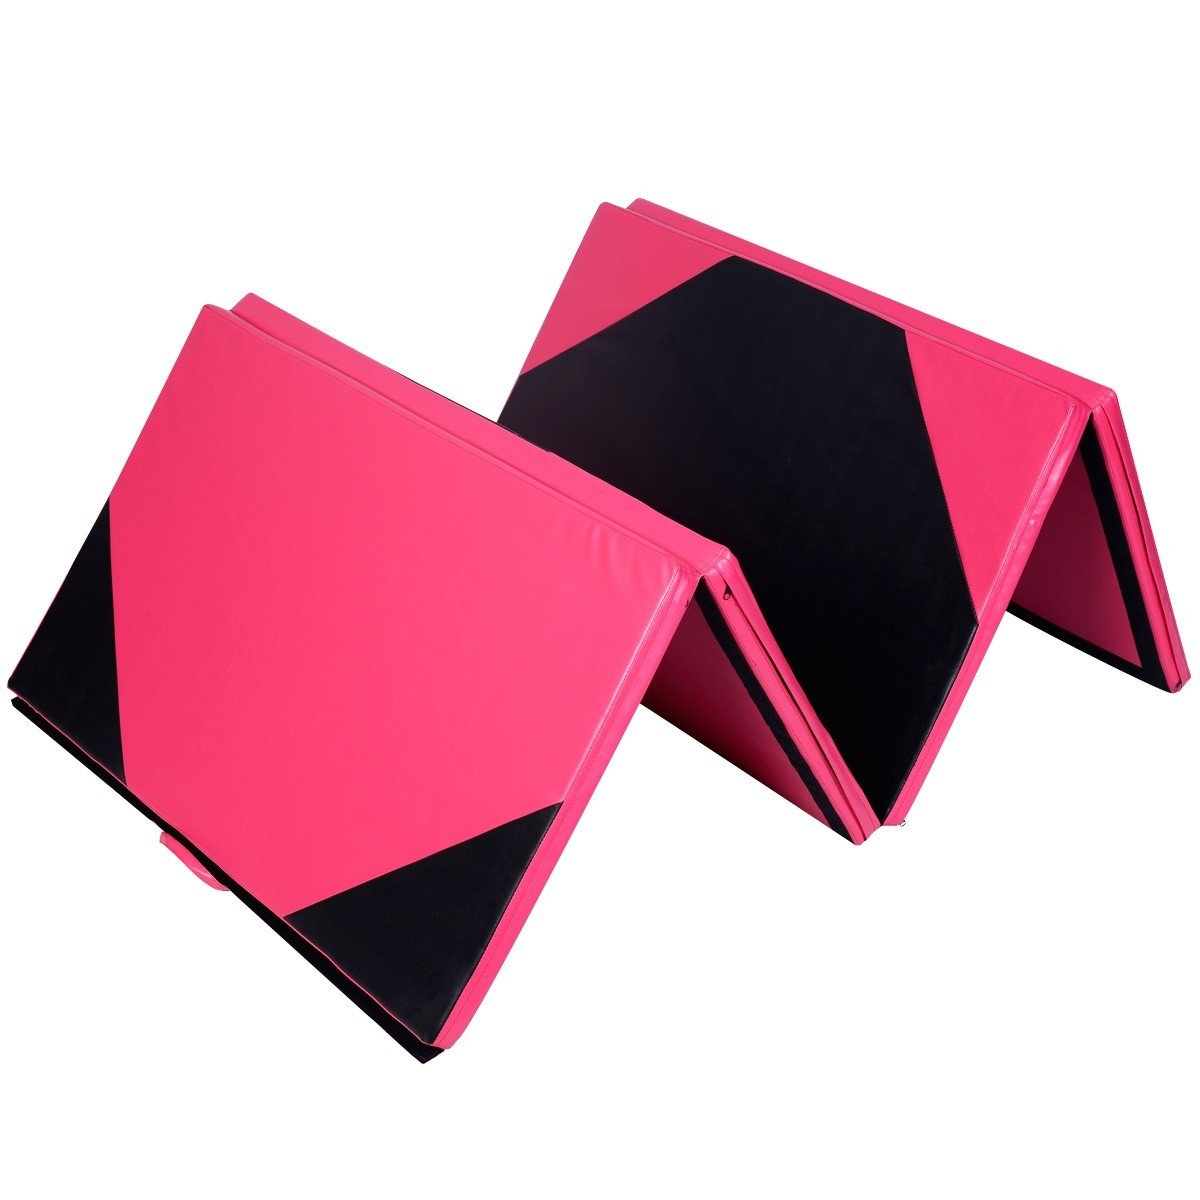 4' x 10' x 2'' Thick Folding Panel Gymnastics Mat